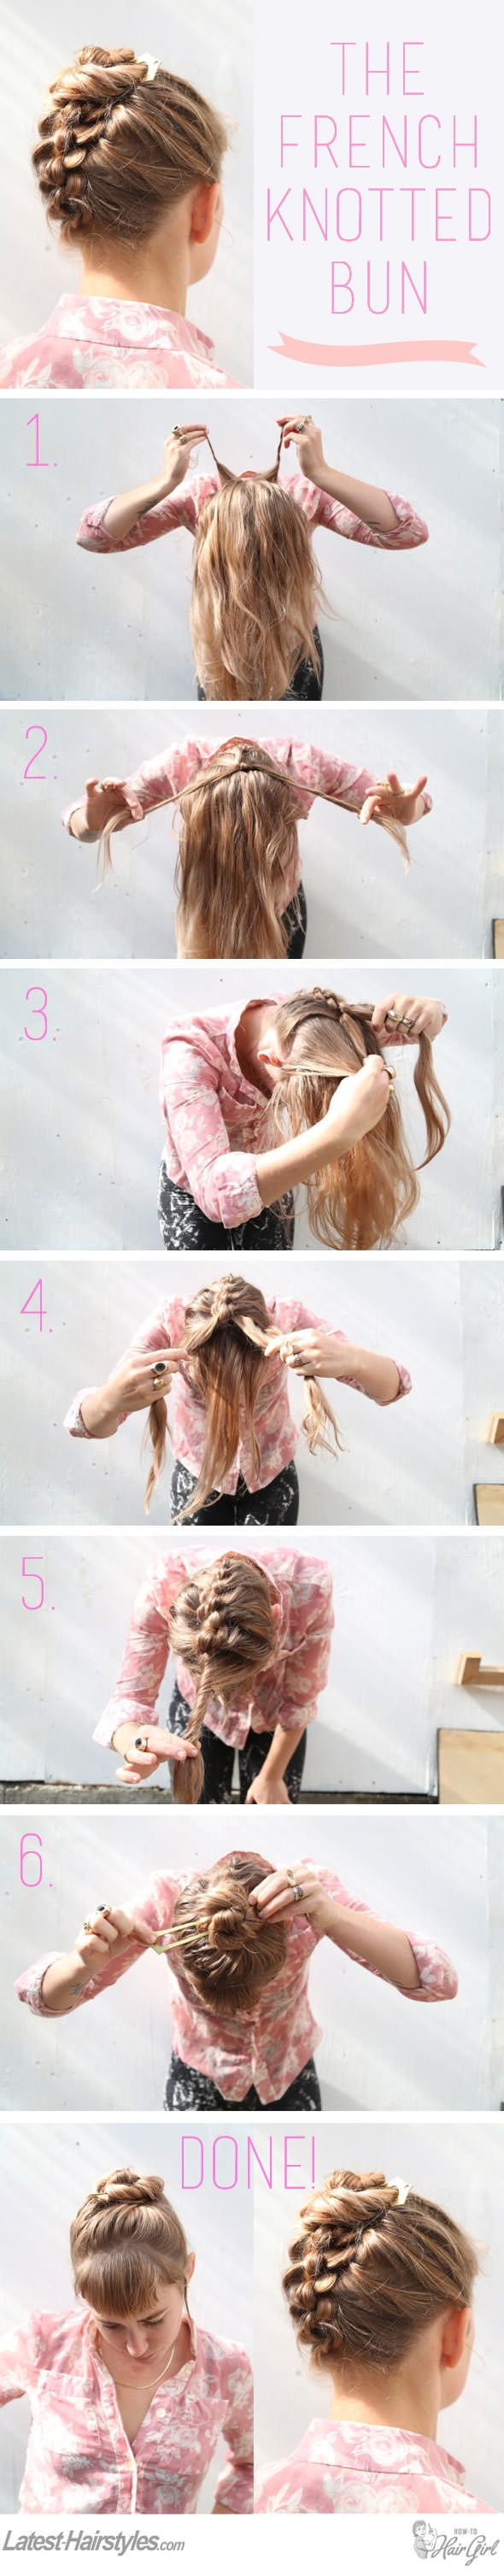 The Easiest French Knotted Bun Tutorial Ever - http://www.2015hairstyle.com/hairstyles/the-easiest-french-knotted-bun-tutorial-ever.html